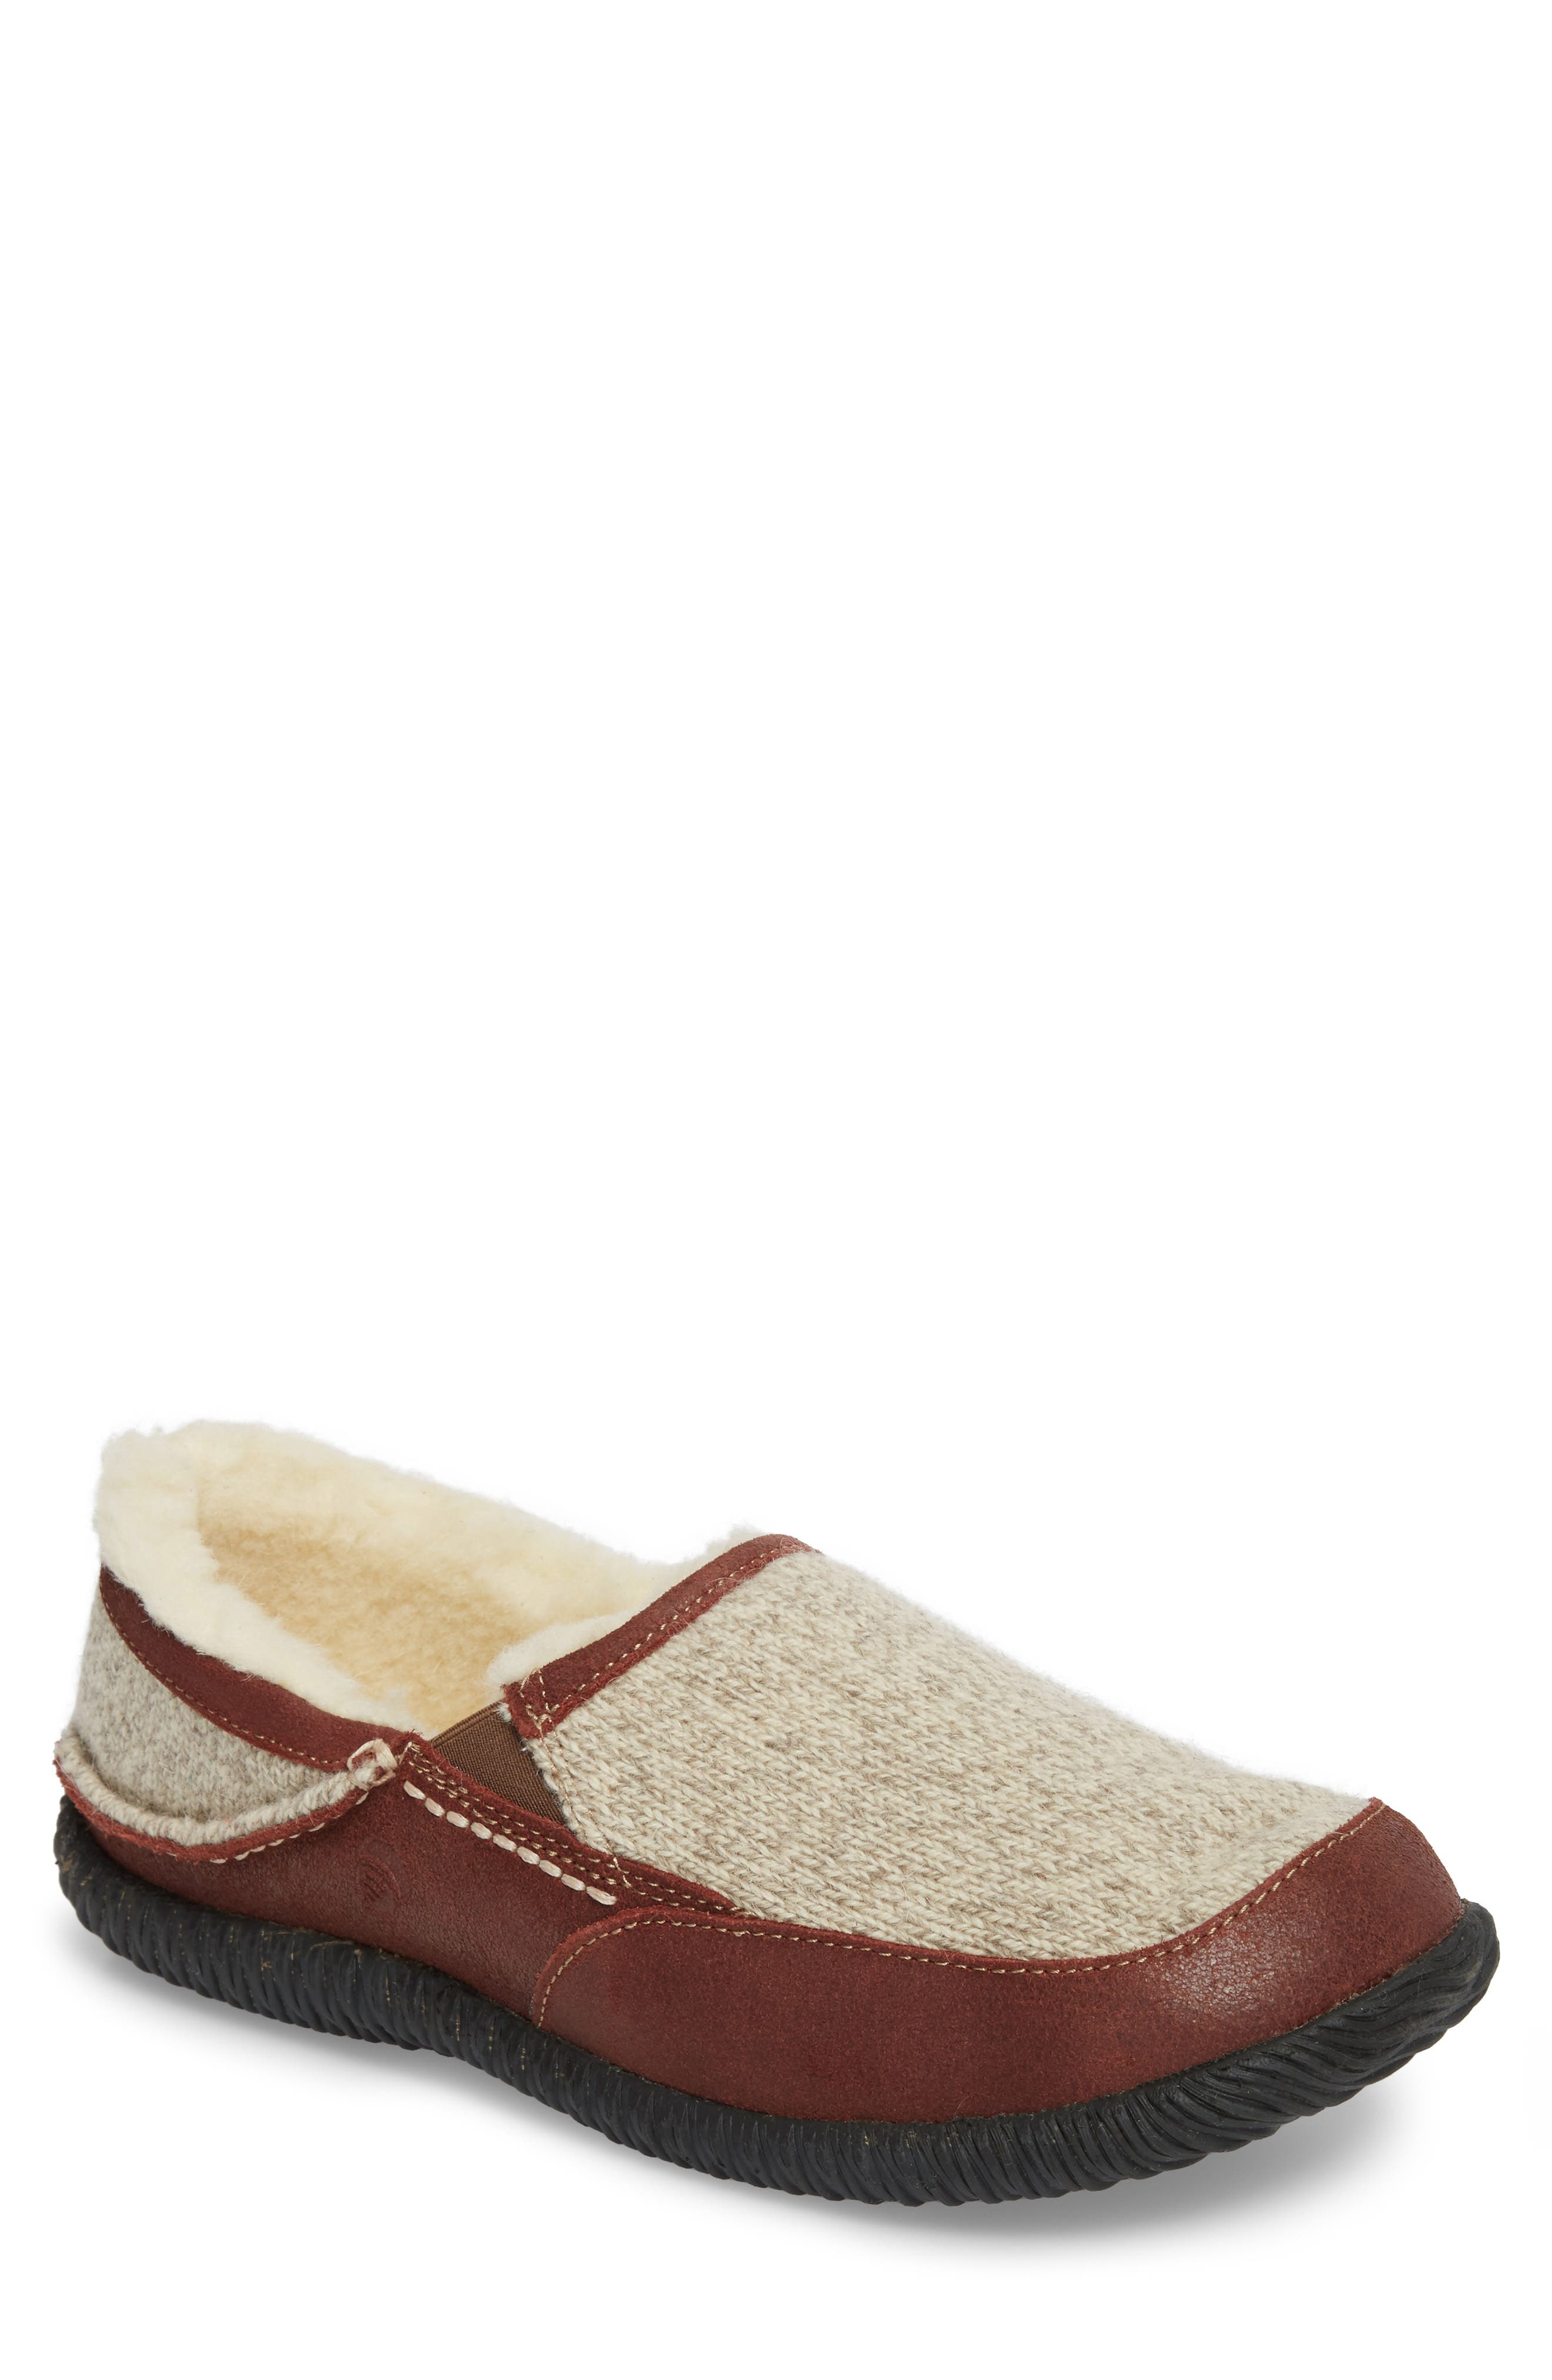 'Rambler' Moc Toe Slipper,                             Main thumbnail 1, color,                             GREY RAGG WOOL